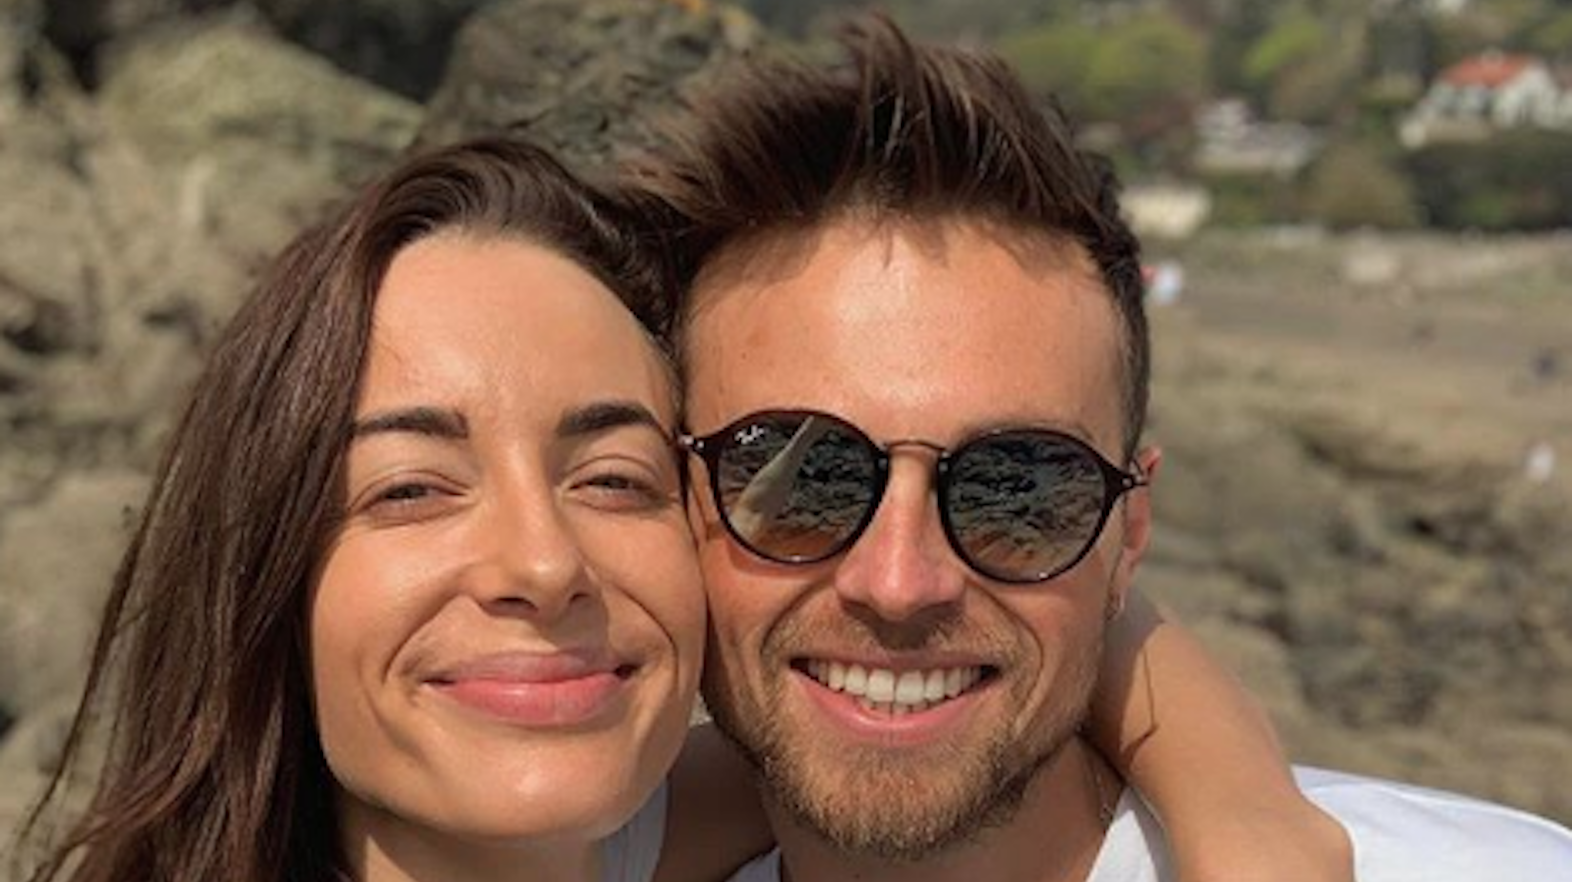 Emily Hartridge's BF Jacob Hazell Speaks Out About Her